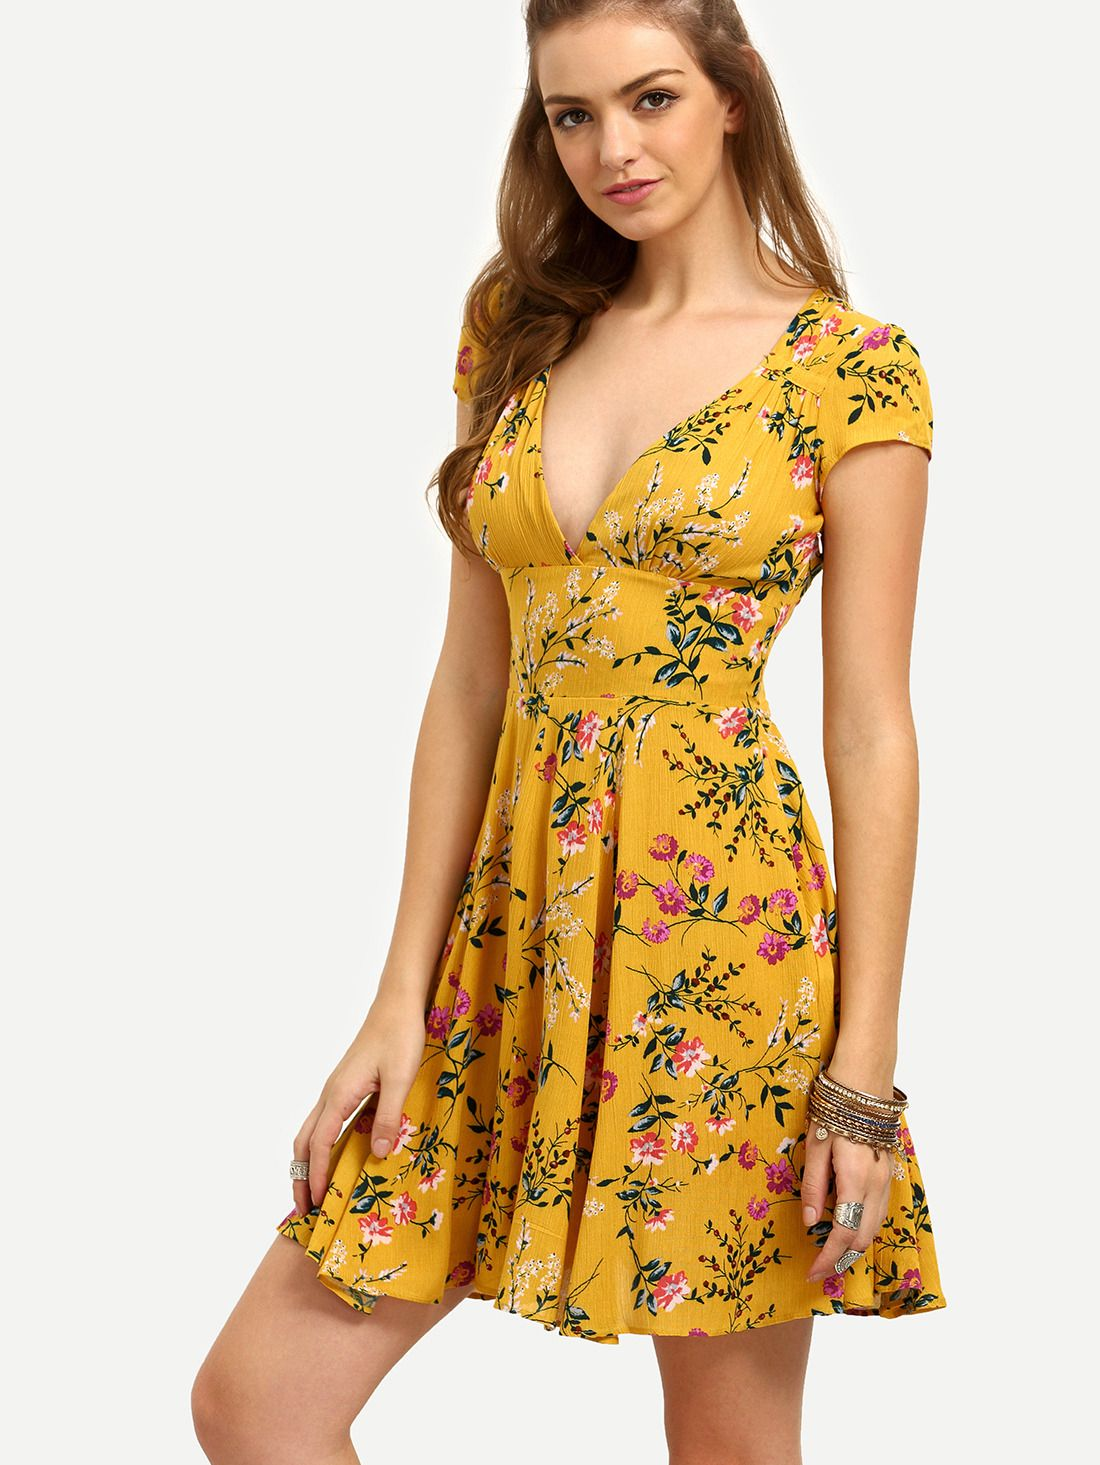 f5e18ddcb98d9 Shop Yellow Floral V Neck Cutout Dress online. SheIn offers Yellow Floral V  Neck Cutout Dress & more to fit your fashionable needs.